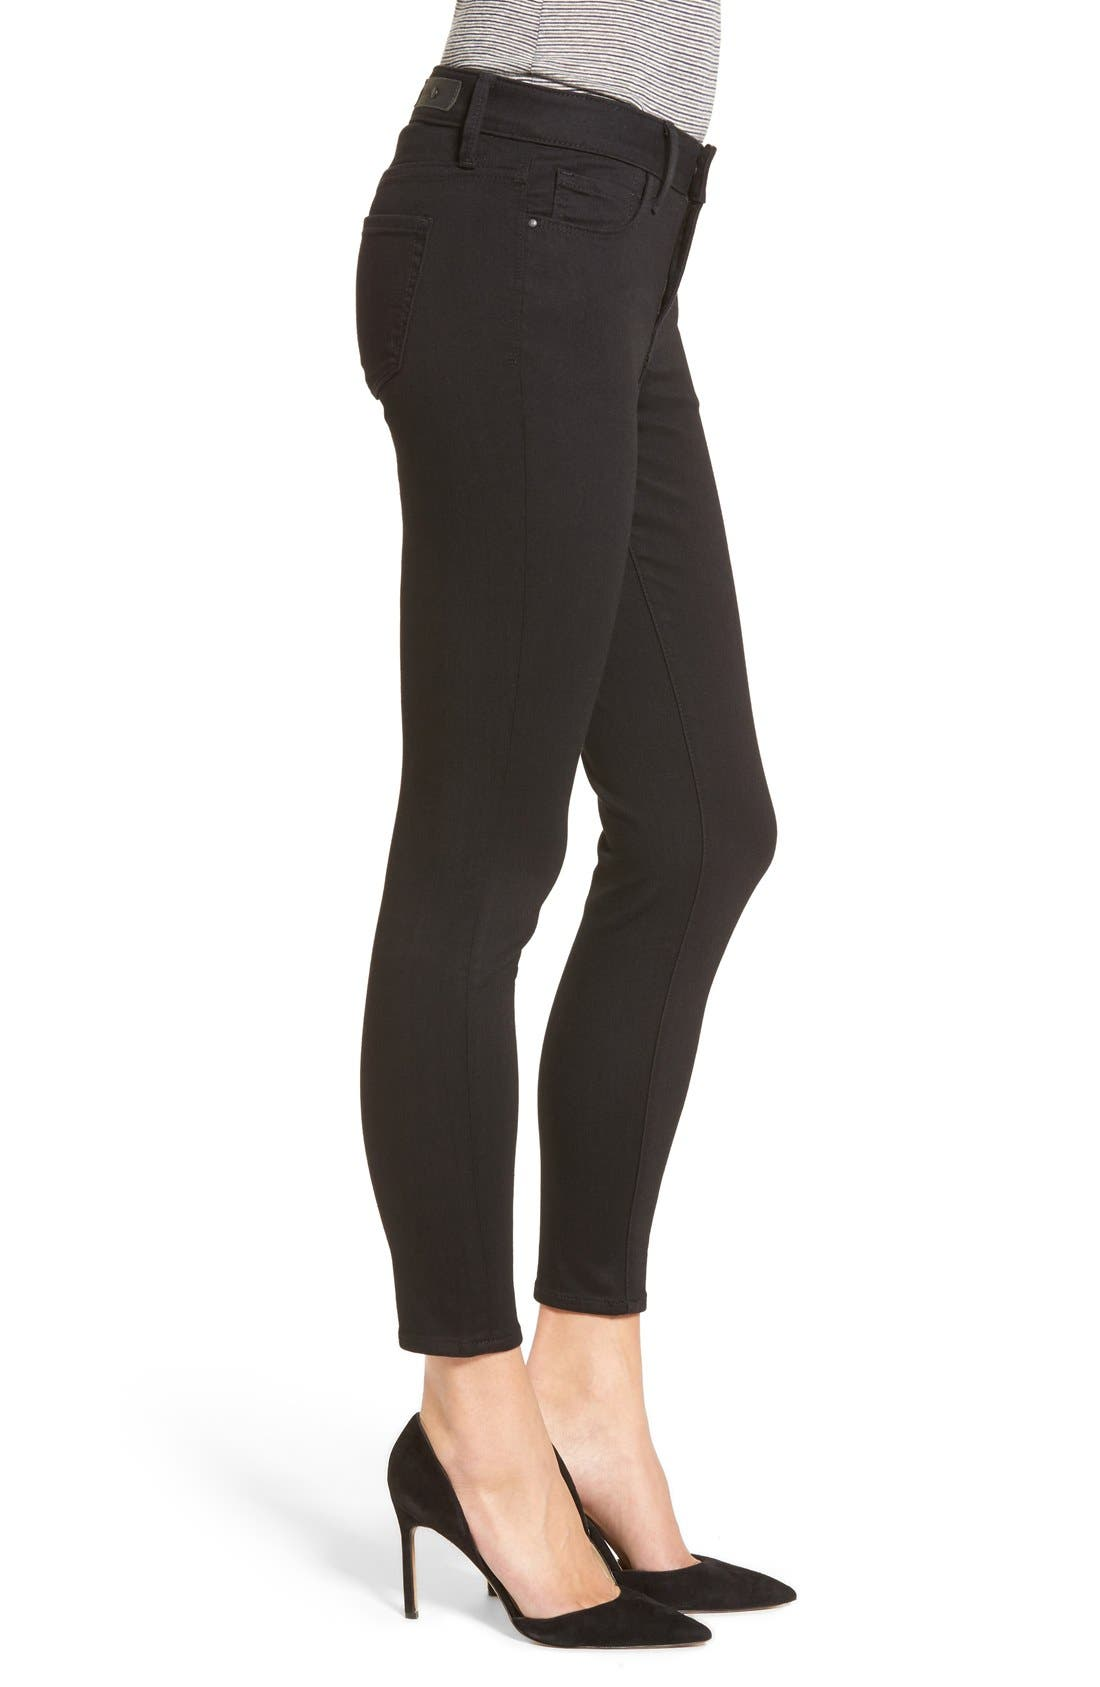 Legacy Crop Skinny Jeans,                             Alternate thumbnail 12, color,                             001